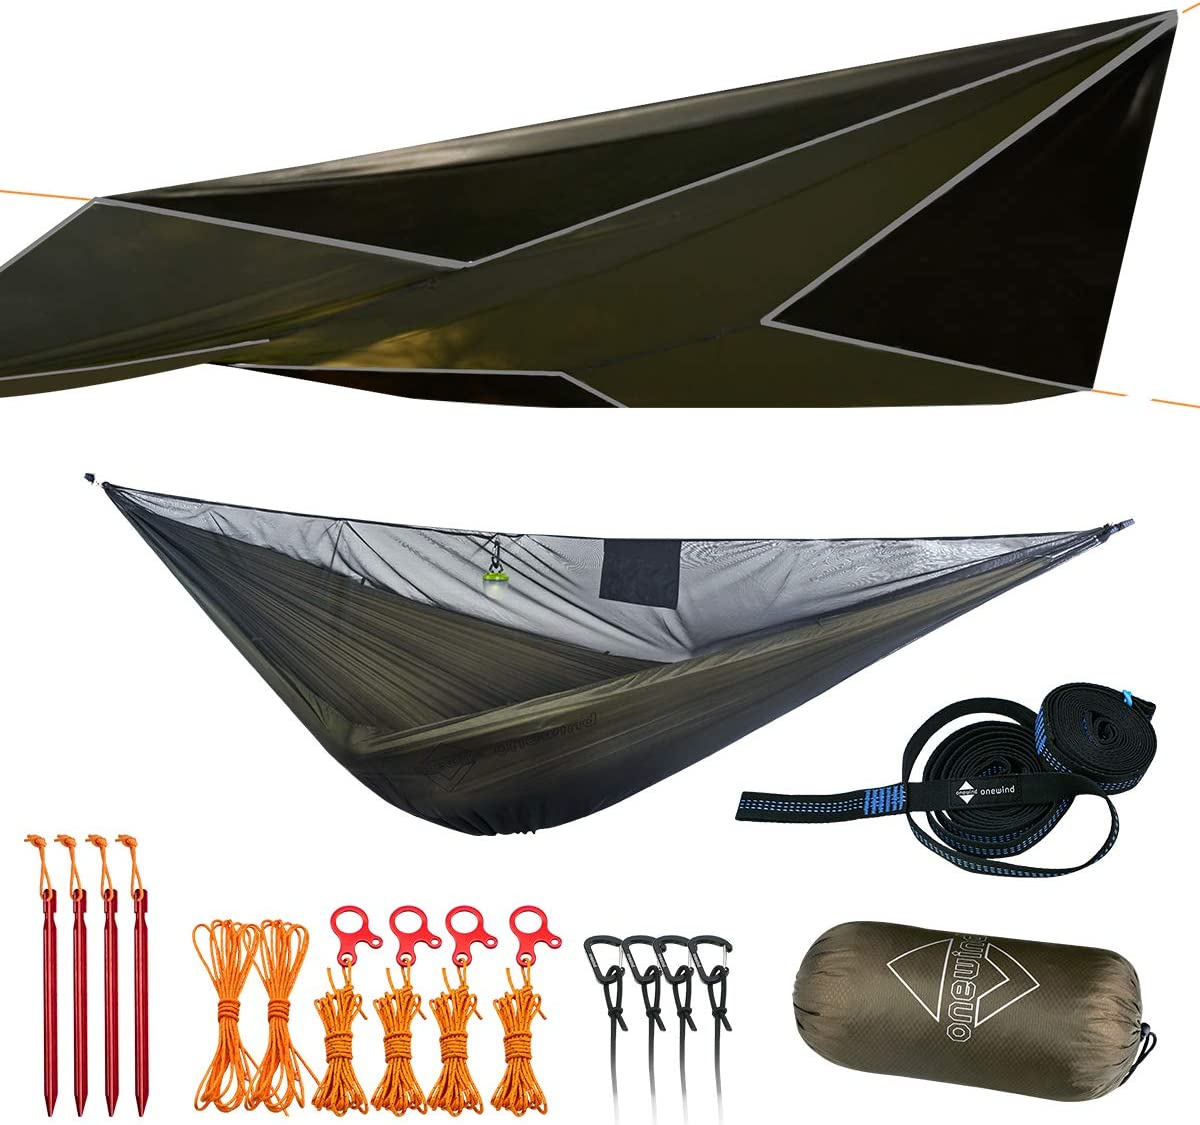 Camping Hammock – Sloth and Fox Outdoor Double Outdoor Hammock with Carabiners Tree Saver Straps